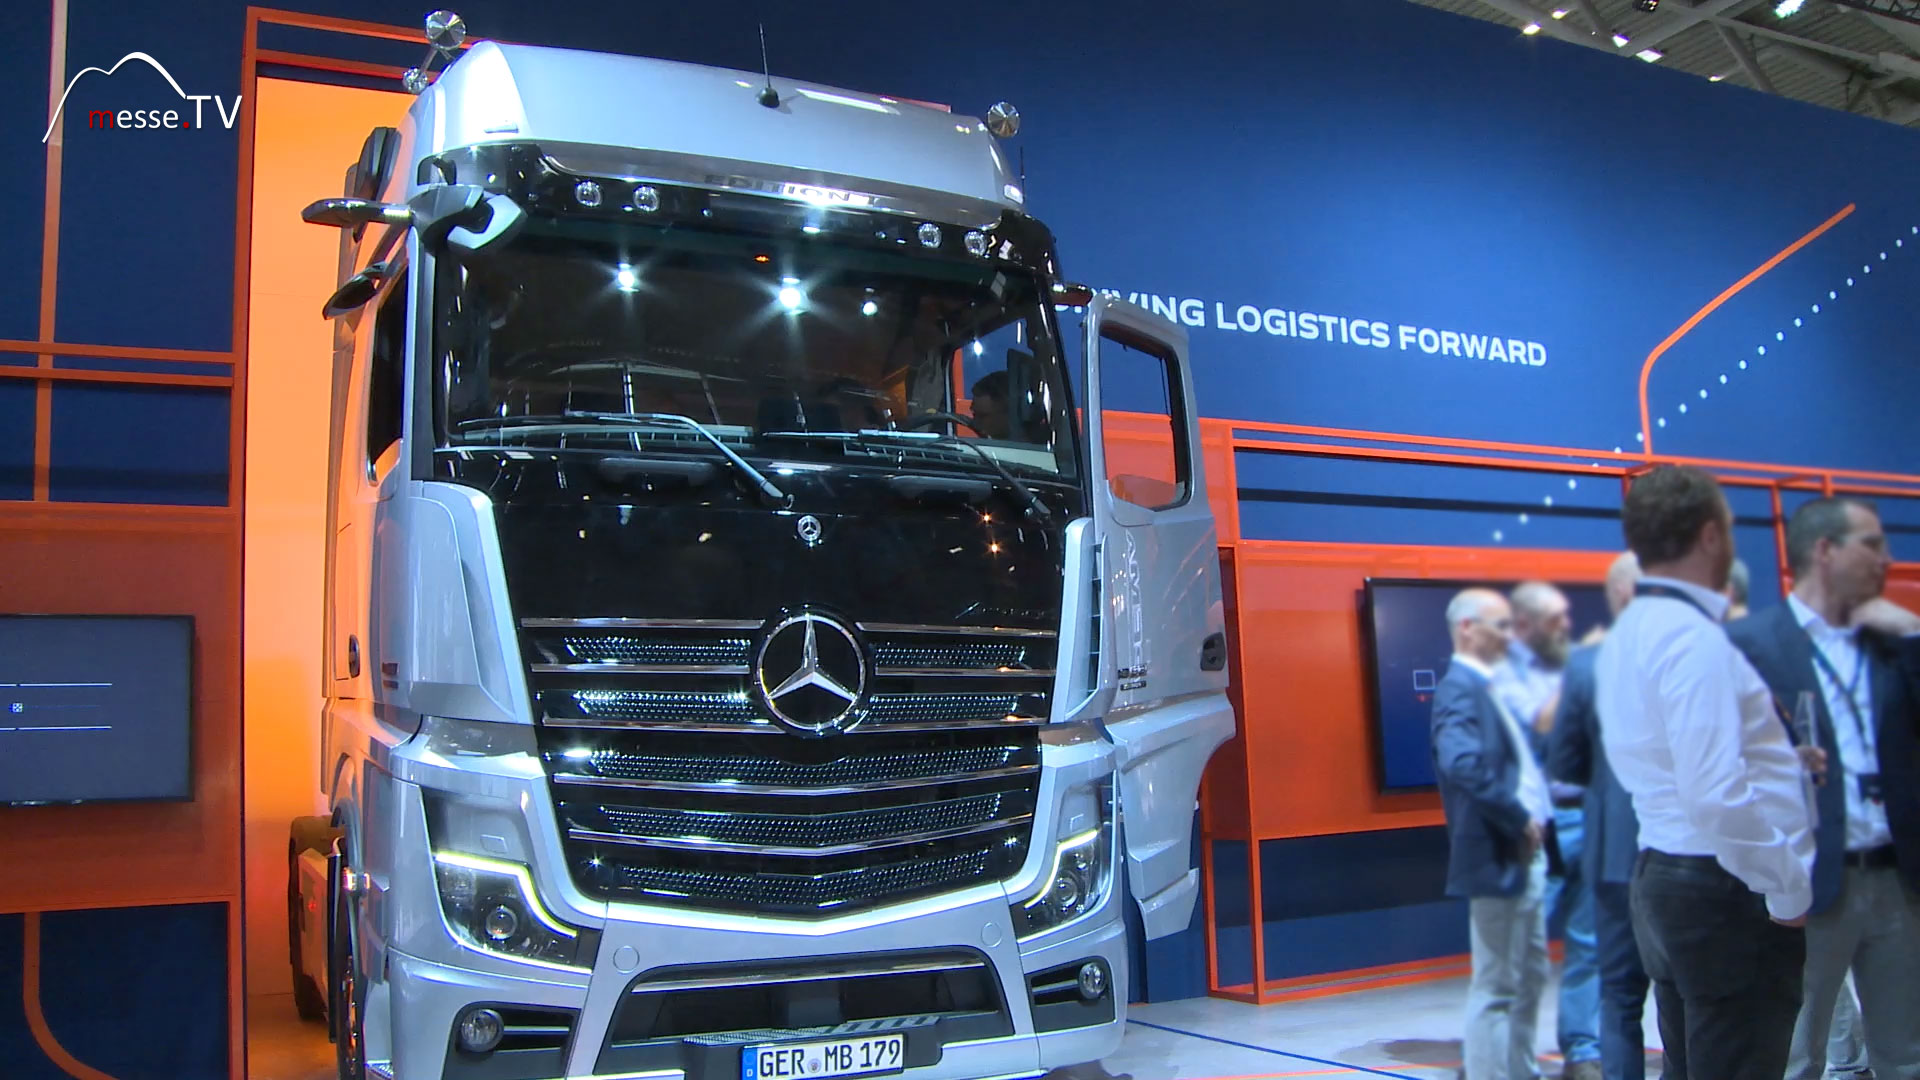 Mercedes-Benz Messestand transport logistic 2019 Messe München